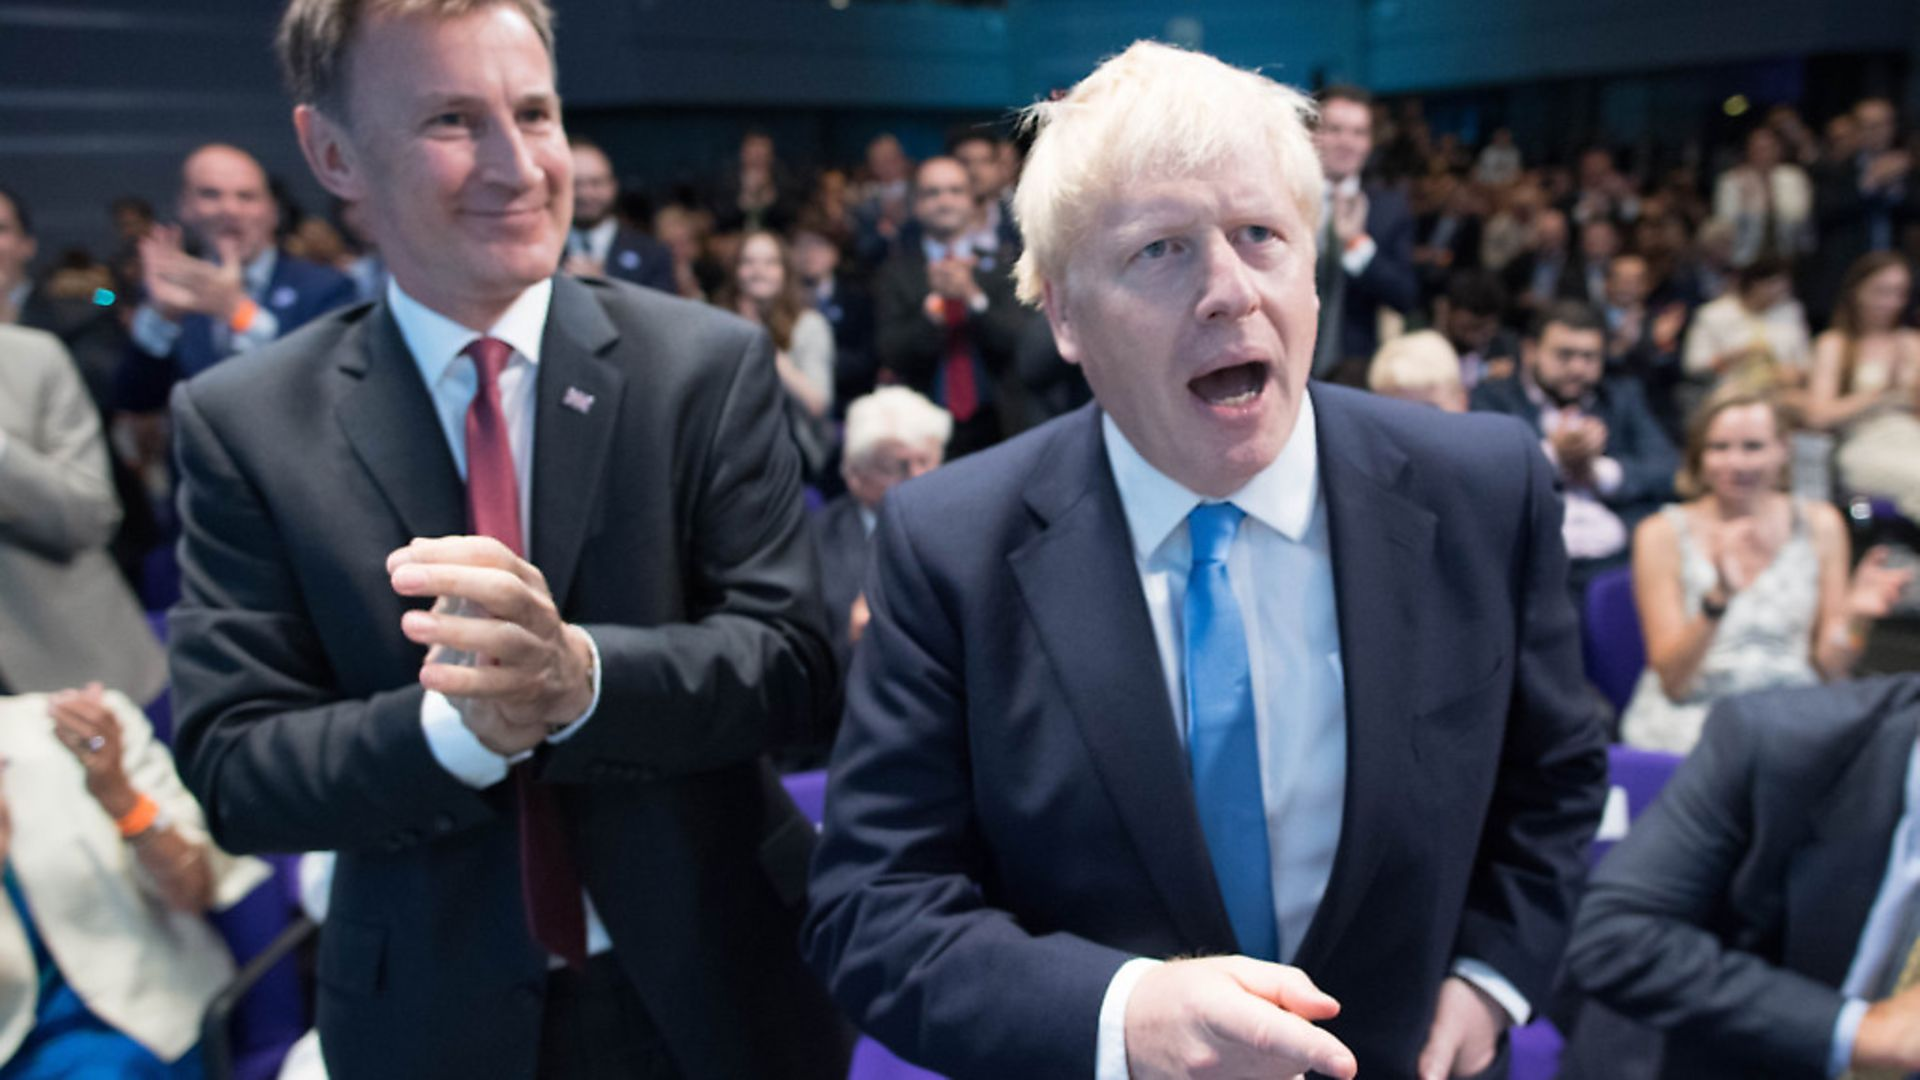 Jeremy Hunt and Boris Johnson were both leadership rivals in 2019. Picture: Stefan Rousseau/PA Wire/PA Images - Credit: PA Wire/PA Images